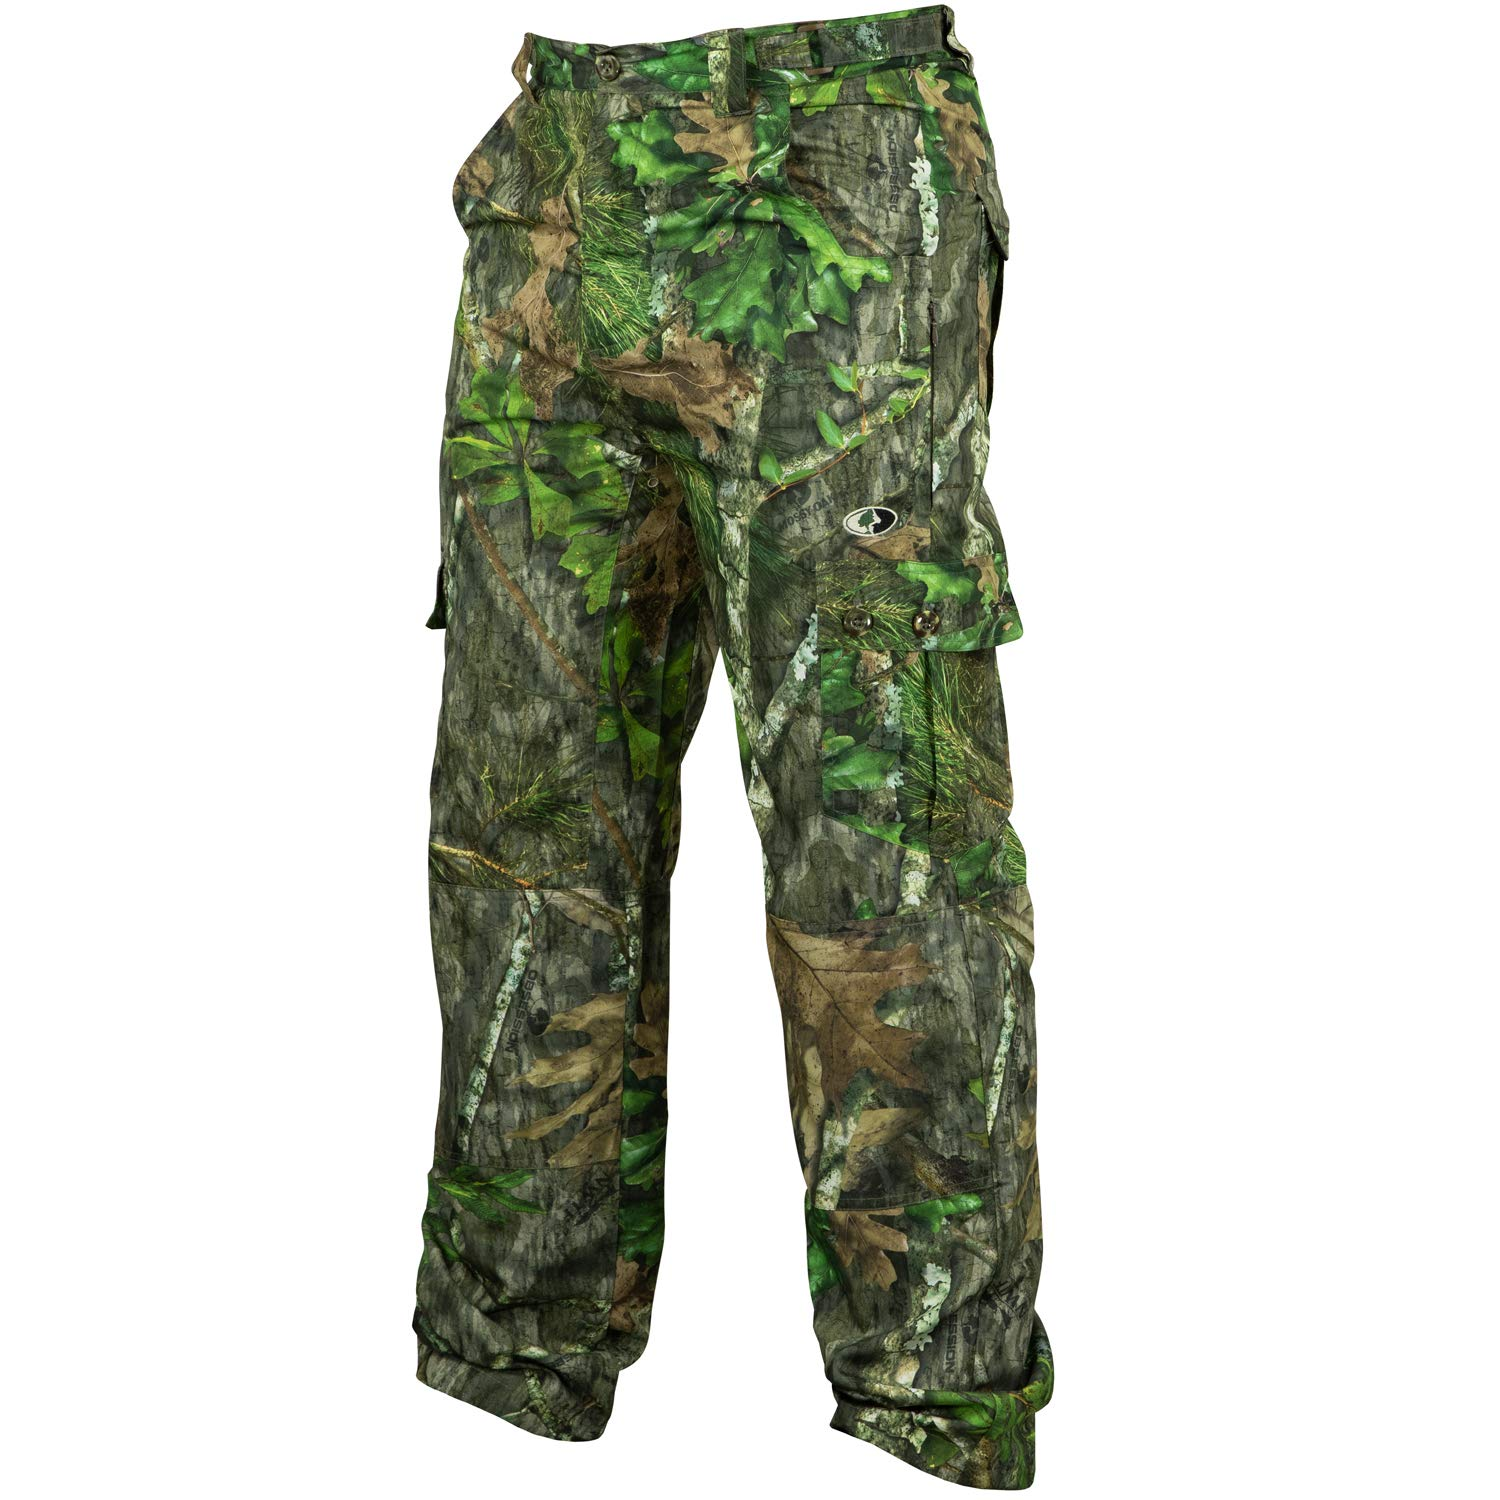 Mossy Oak Camo Lightweight Hunting Pants for Men Camouflage Clothing, Small, Obsession by Mossy Oak